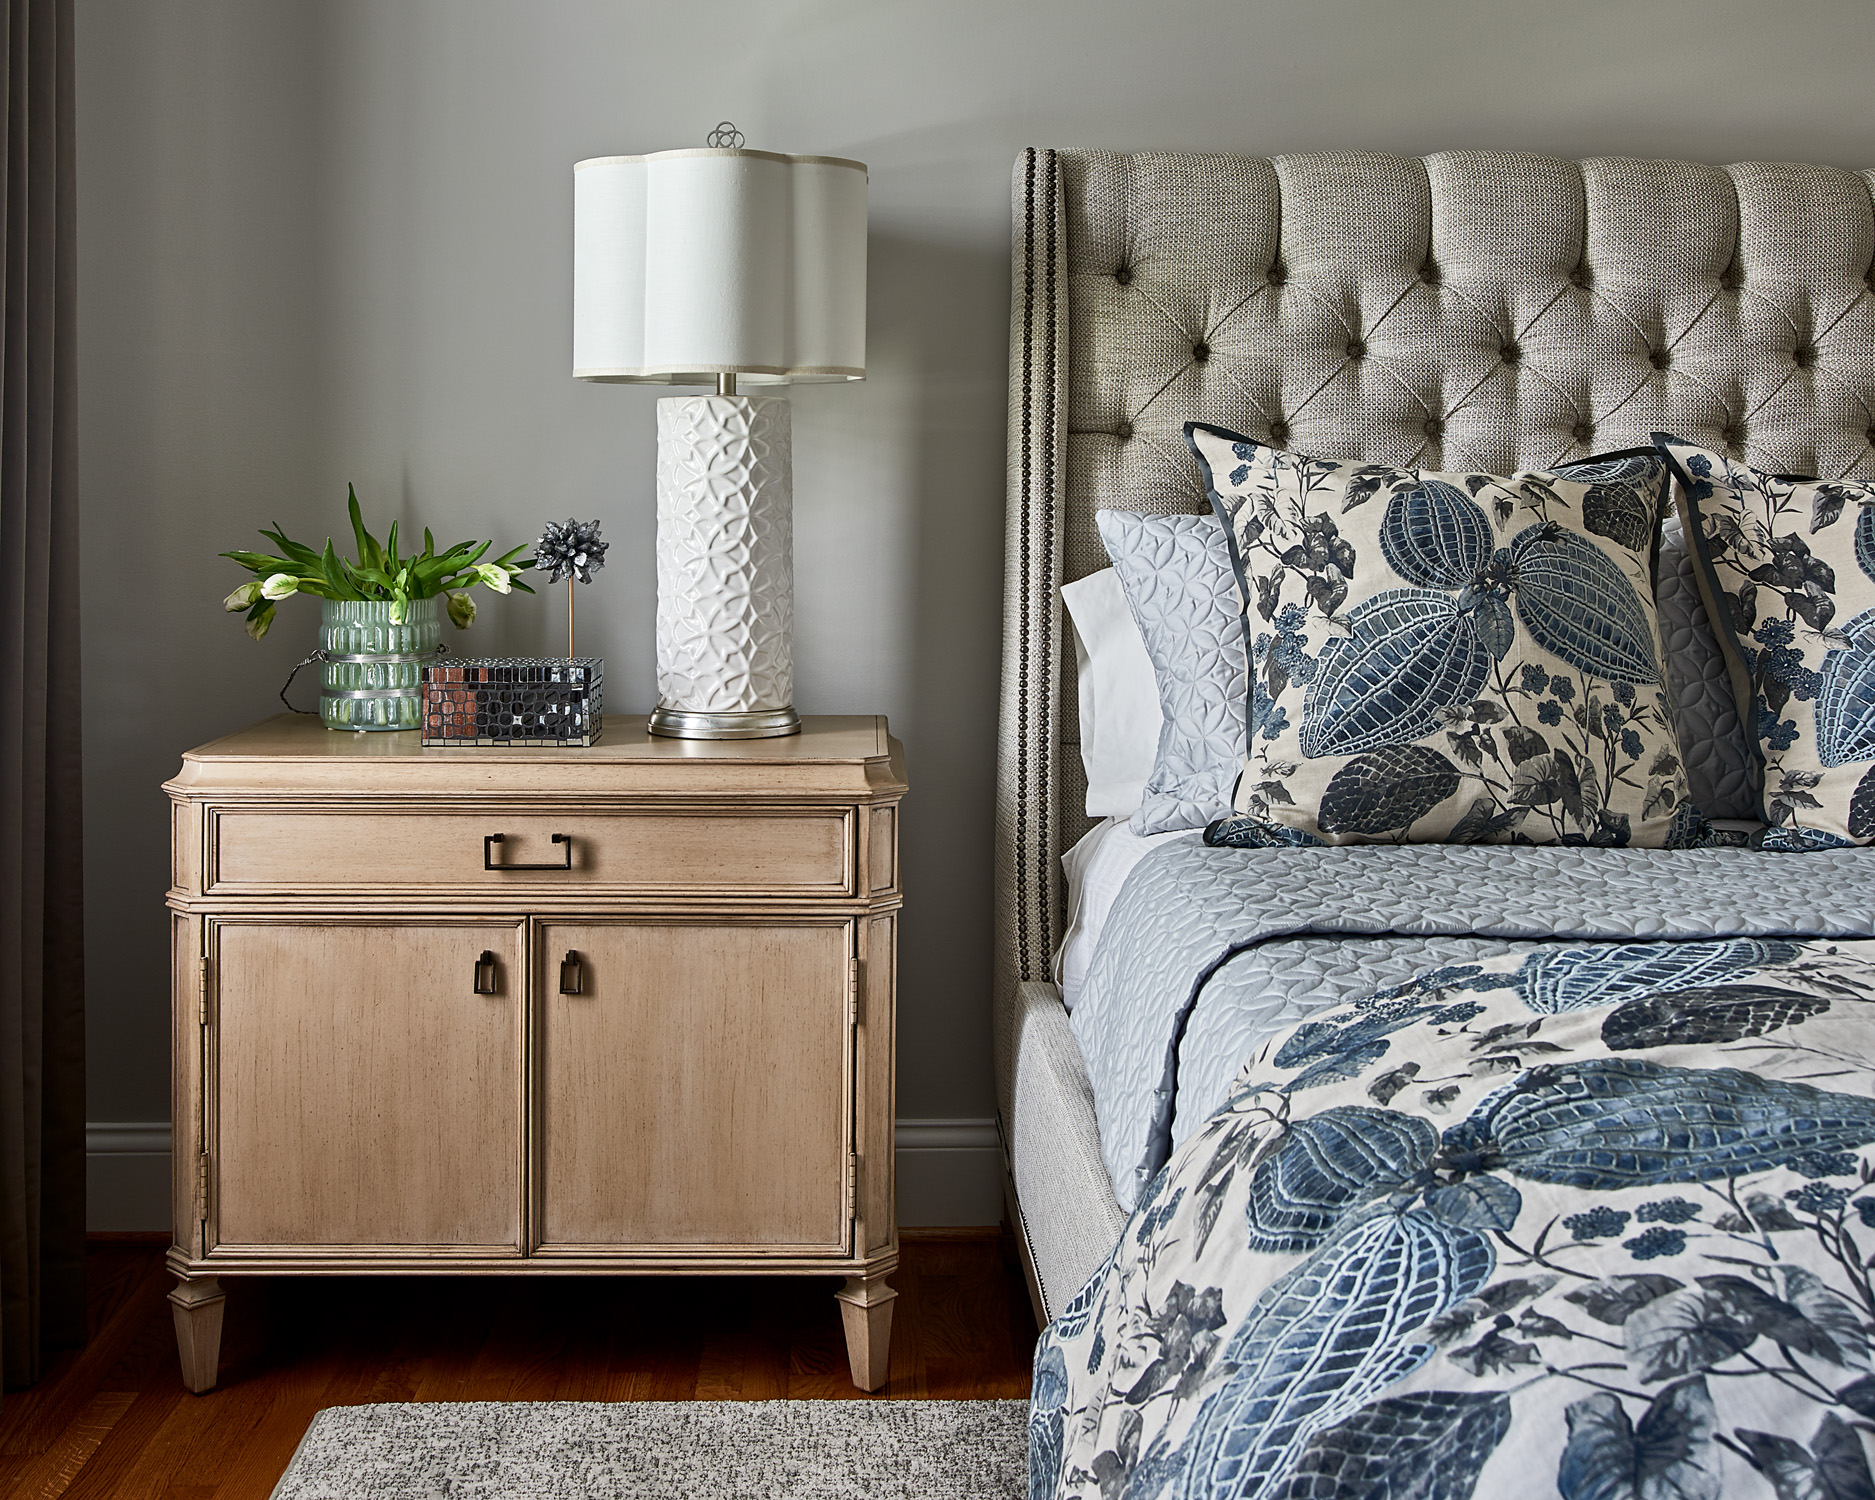 Bedroom with tufted bed and painted night table with scalloped lamp